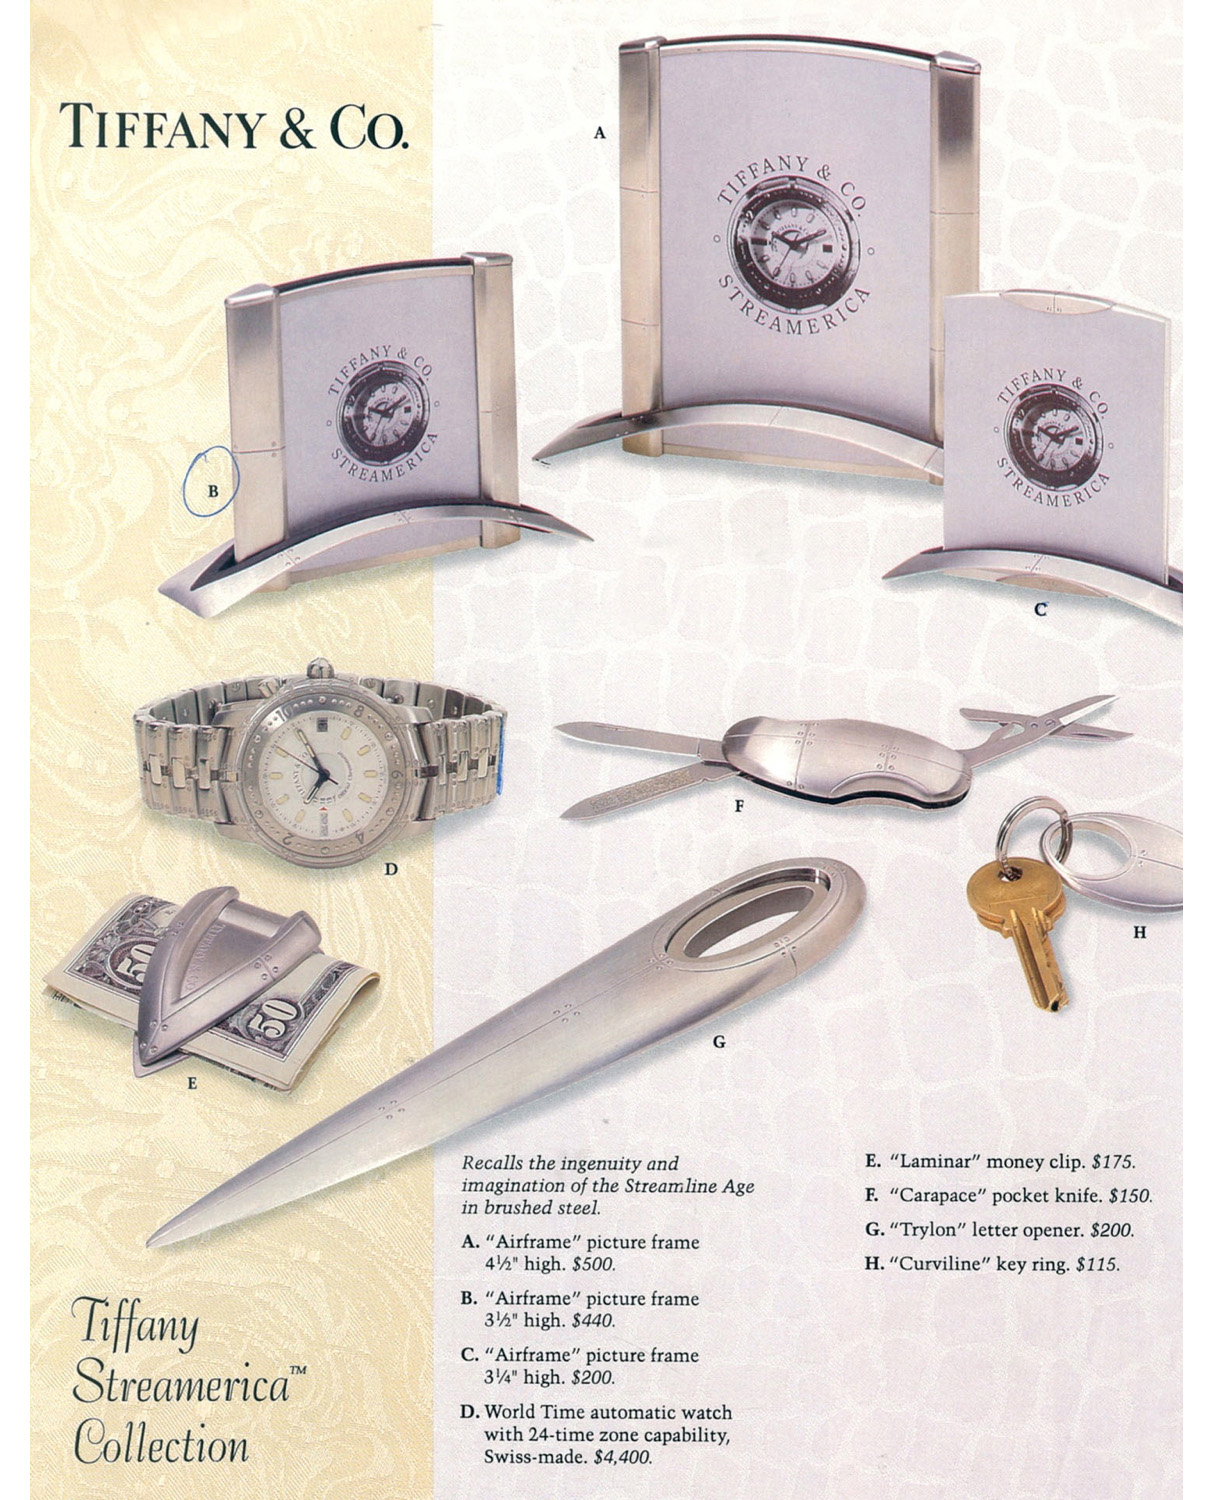 Tiffany & Co. Streamerica Stainless Steel Collection Advertisements YamRun Jewelers